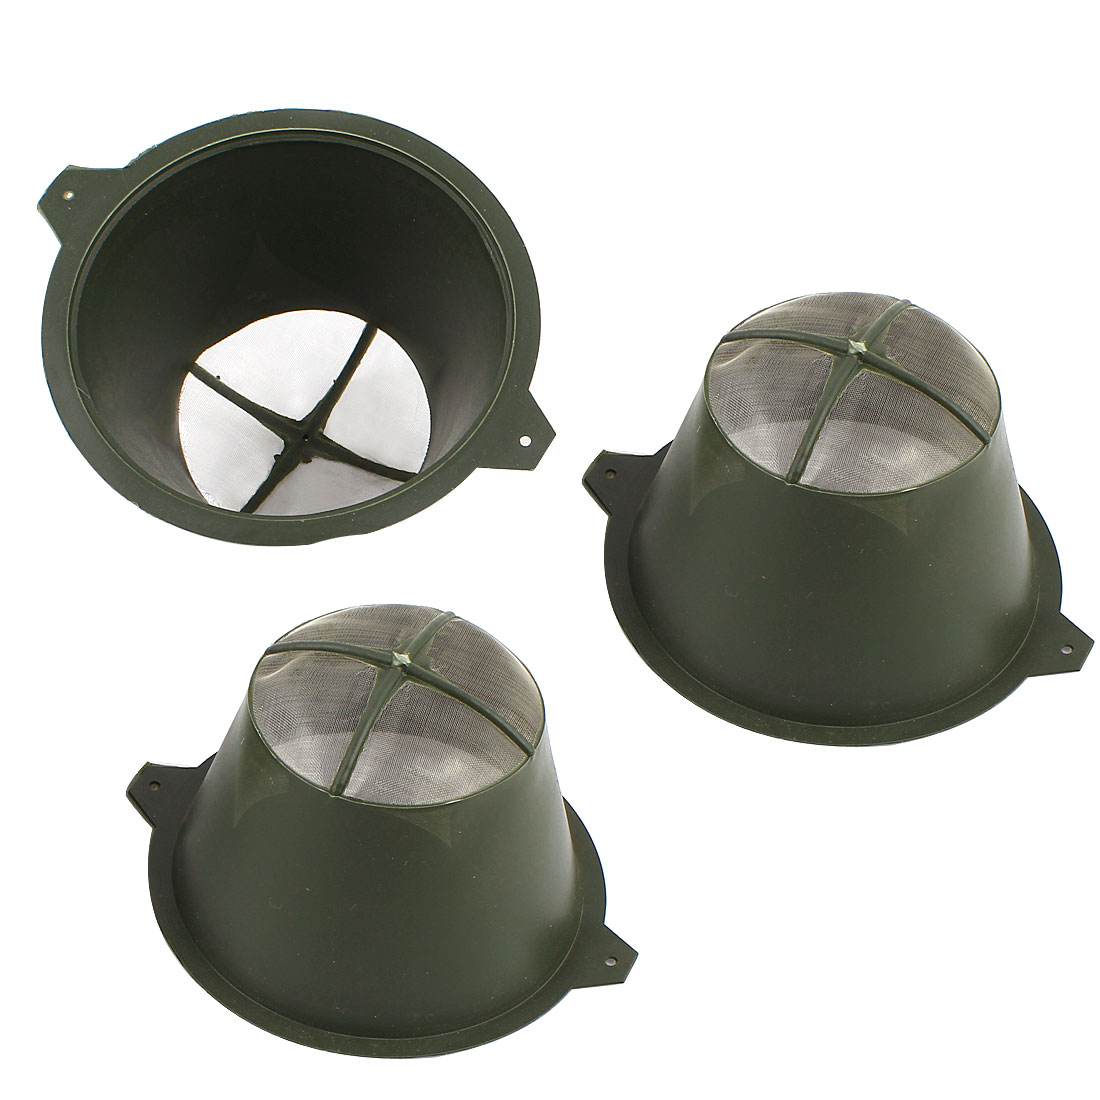 3Pcs 7mm Nylon Mesh Dia Plastic Filters Strainers Sieve Army Green